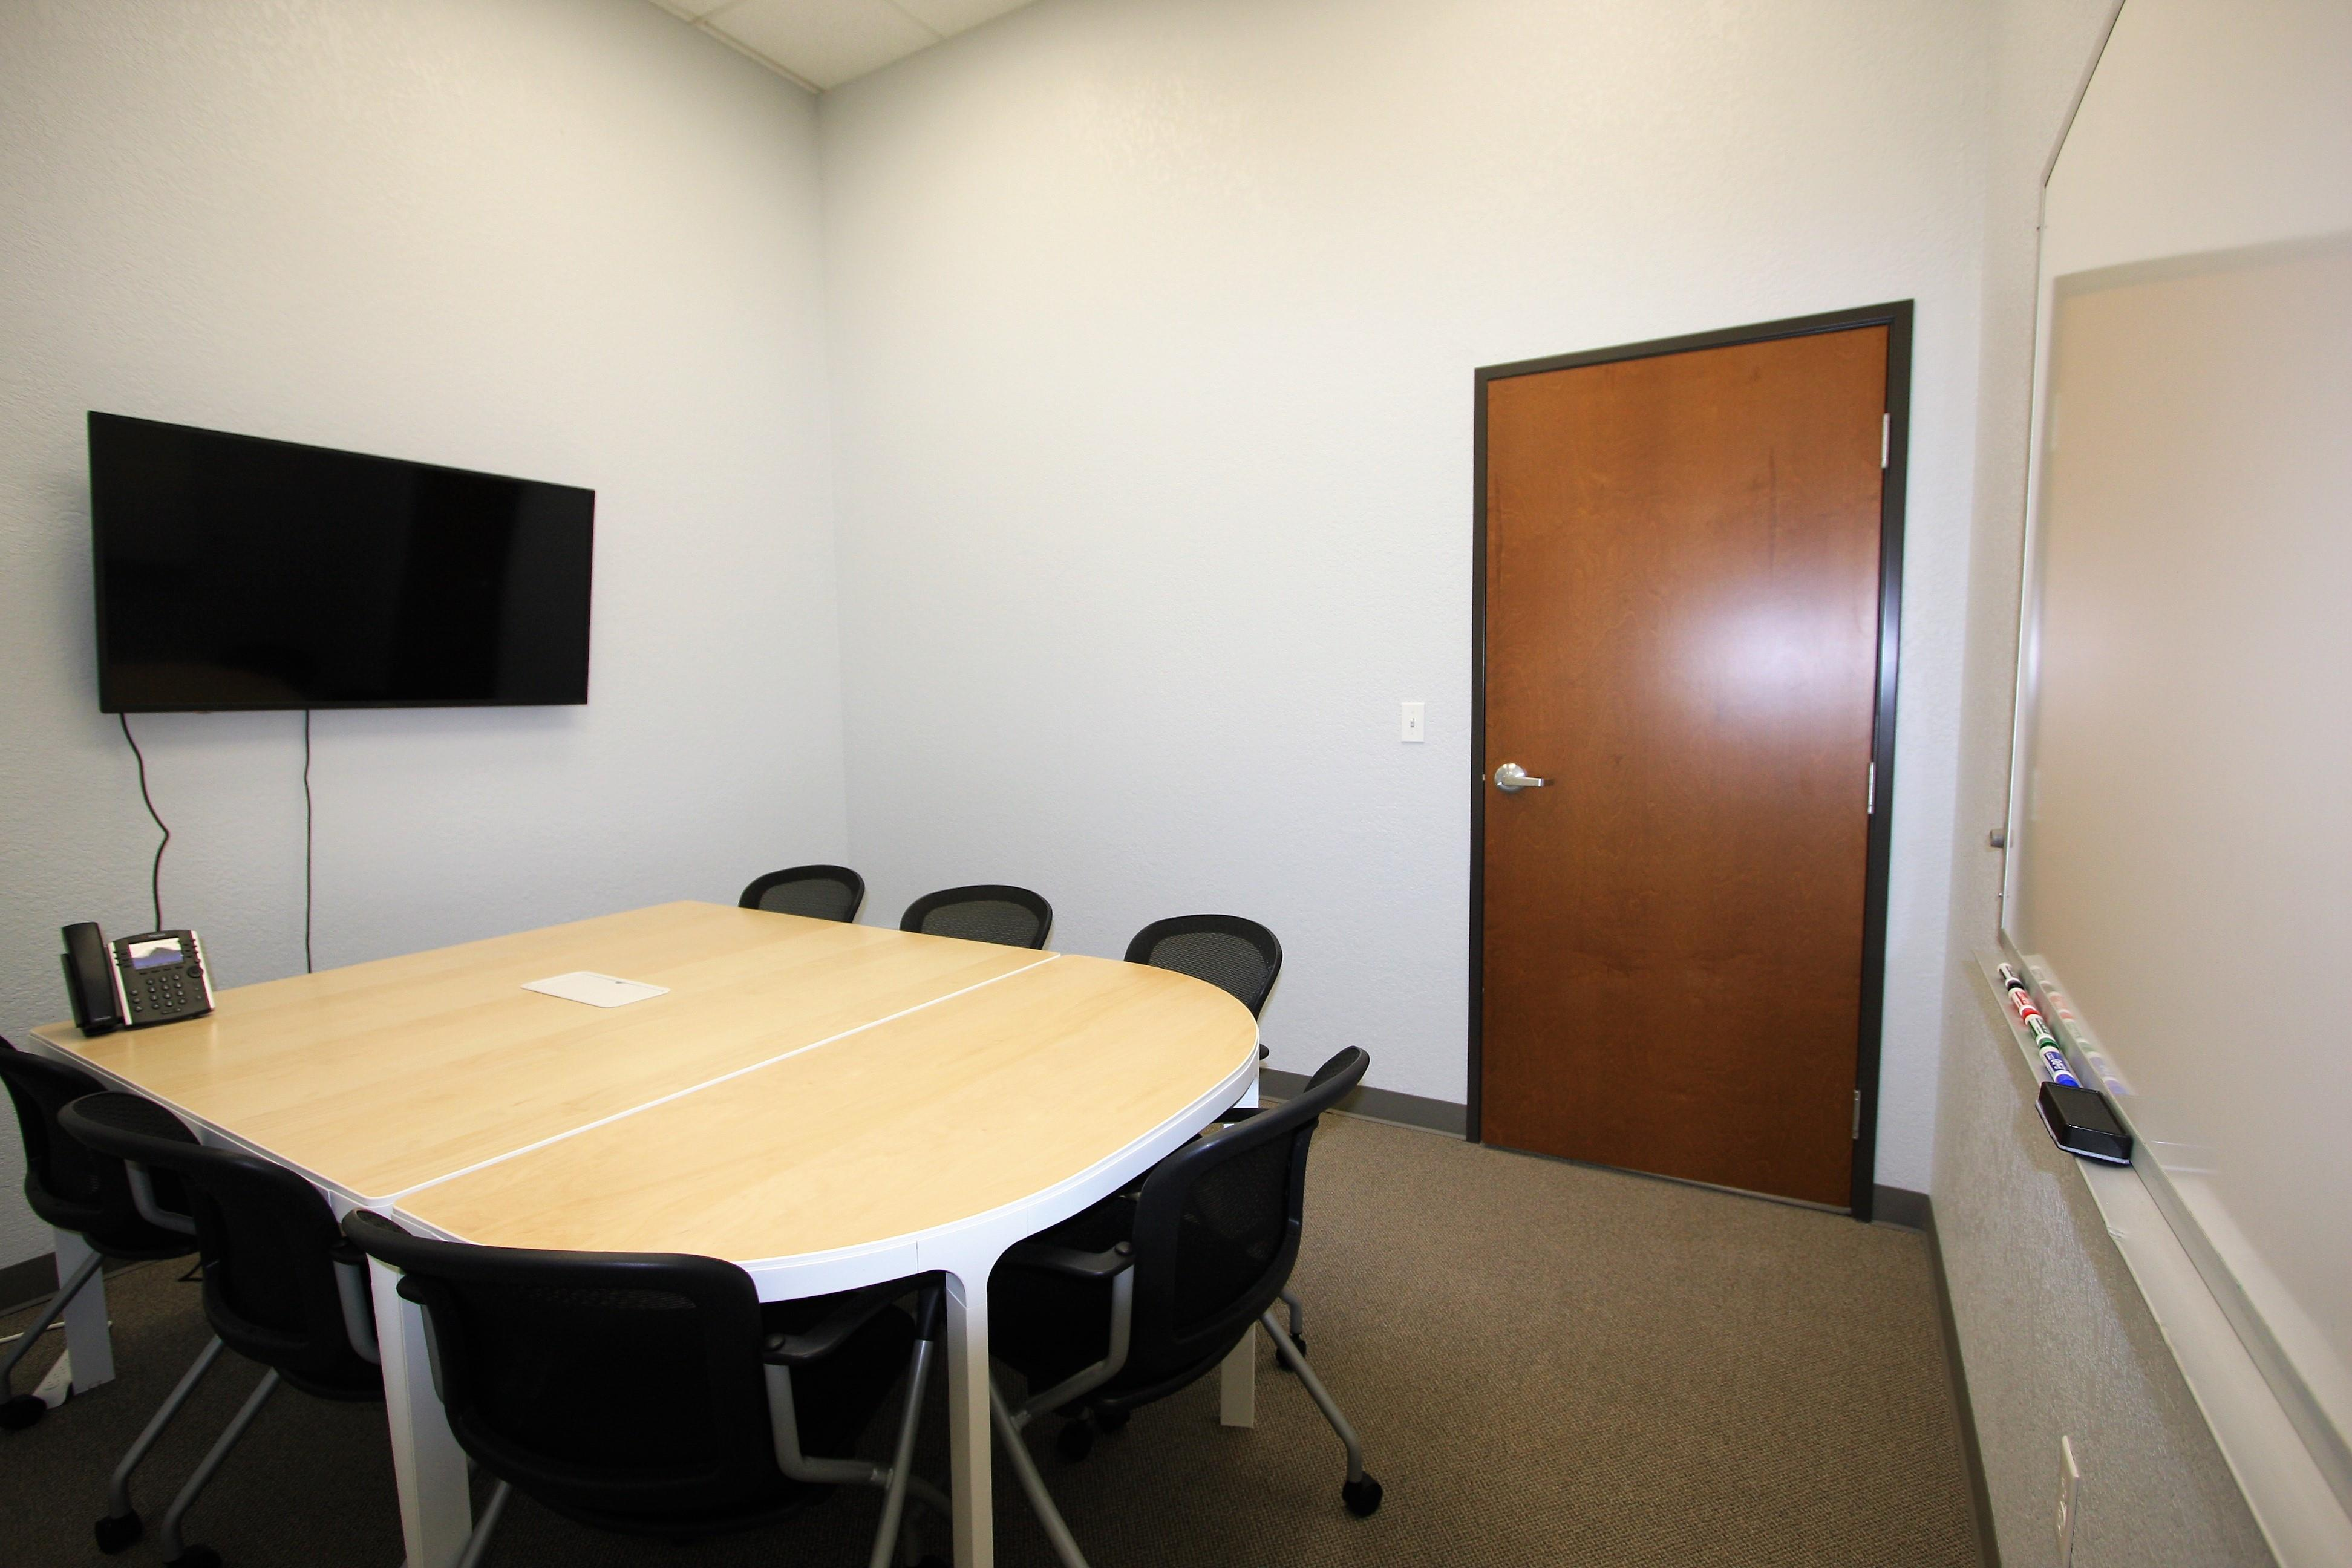 The Workplace - East Meeting Room